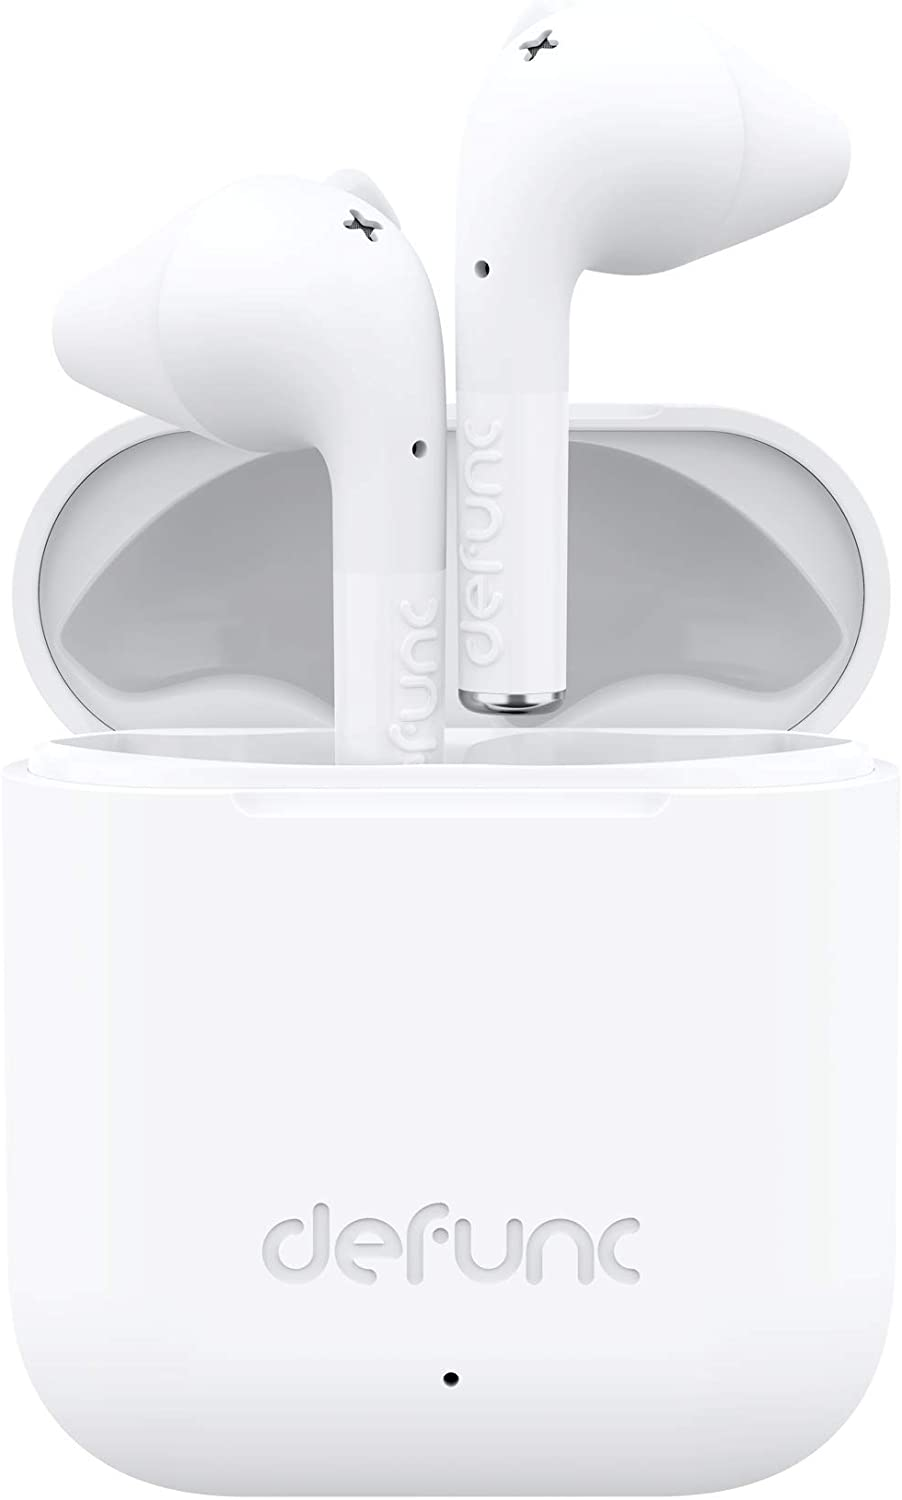 Defunc True GO Slim Bluetooth 5.0 Wireless Earbuds with Wireless Charging Case IPX4 Waterproof TWS Stereo Headphones in Ear Built in Mic USB-C Charging 22 Hour Battery Life (White)